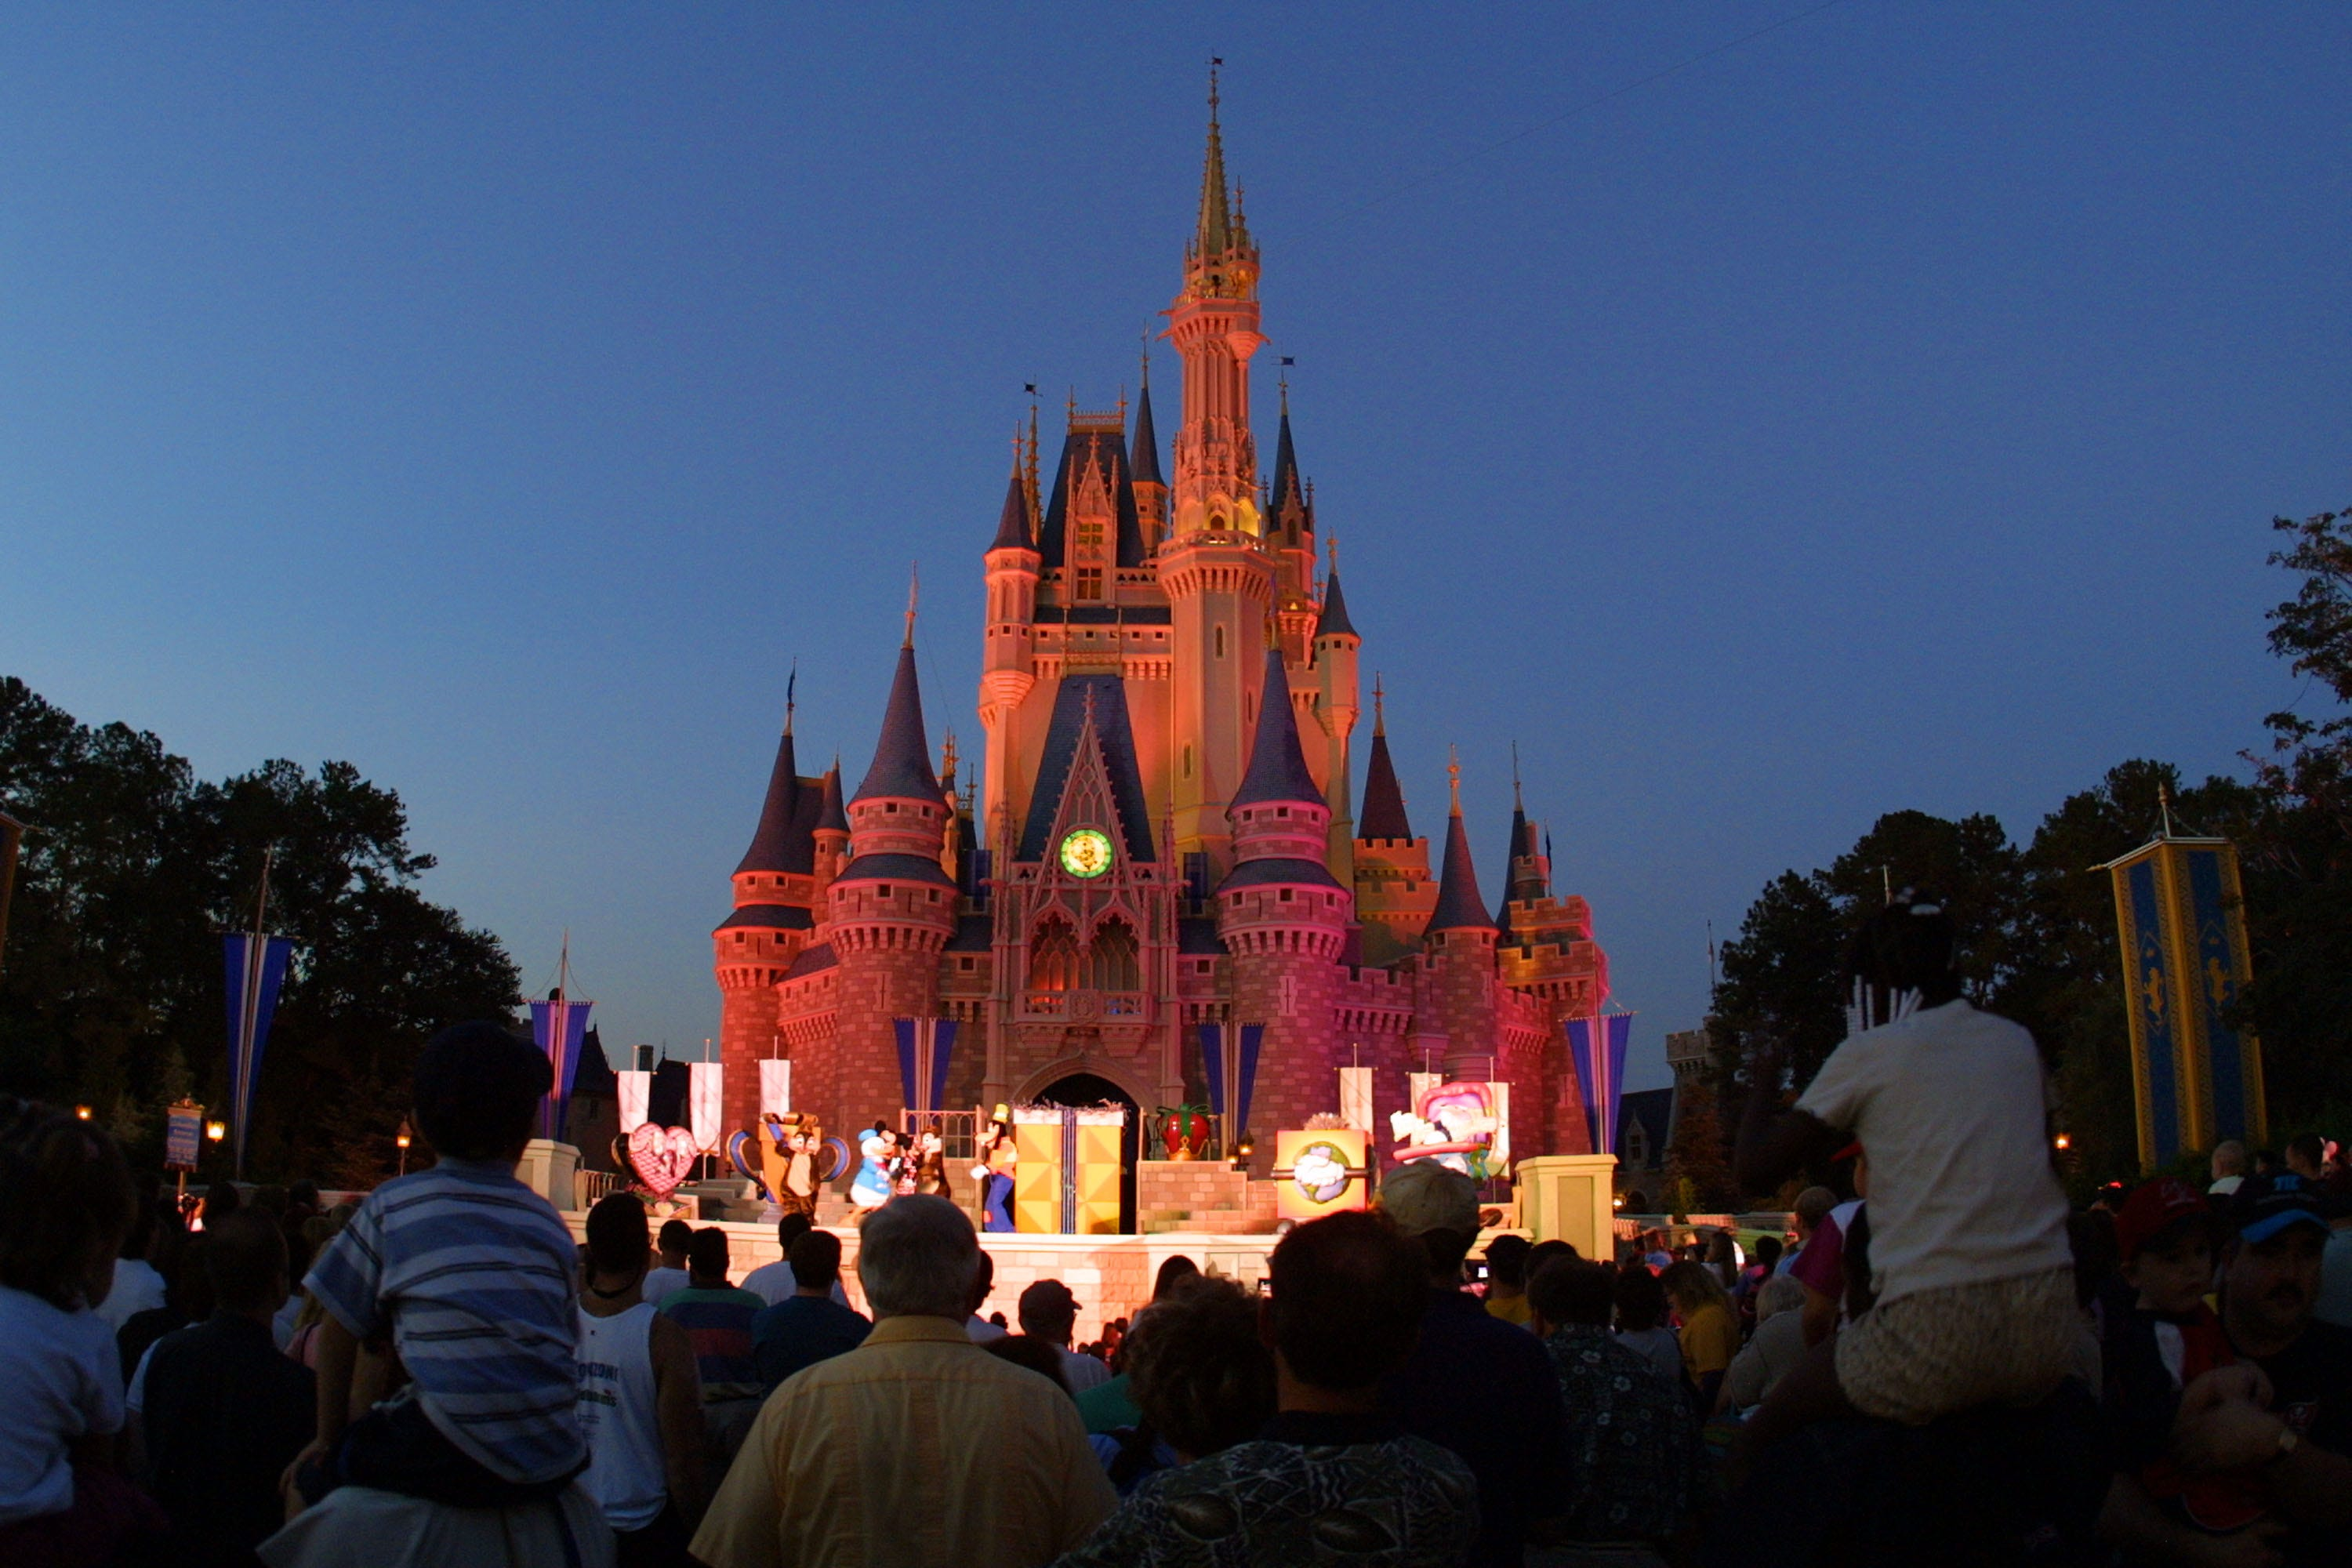 Slide 5 of 8: Cinderella Castle at Walt Disney World's Magic Kingdom lights up at night.